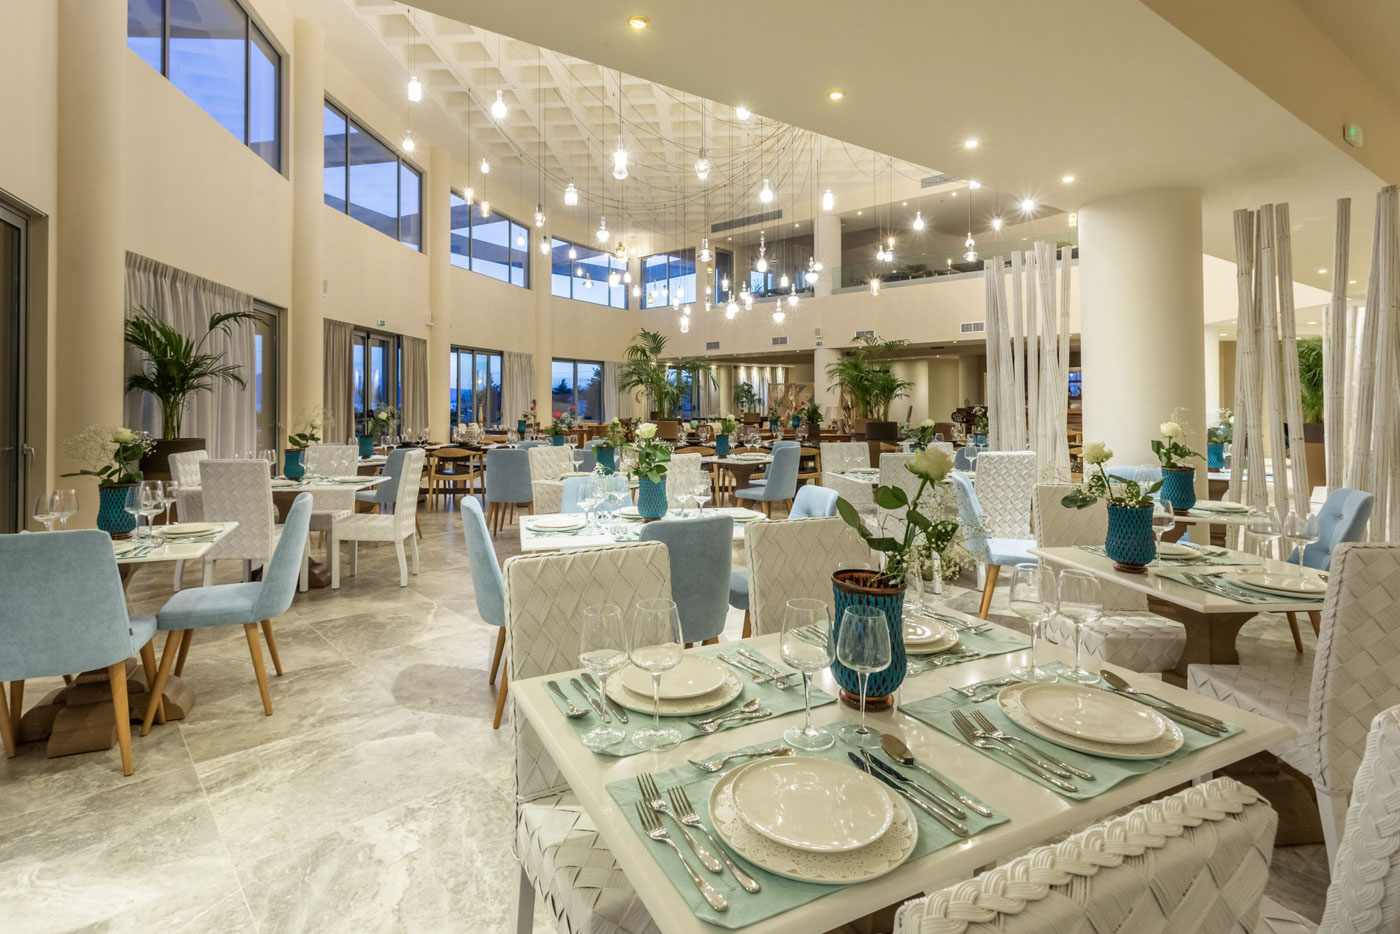 Elysian luxury hotel and spa Kalamata restaurant with decorated tables